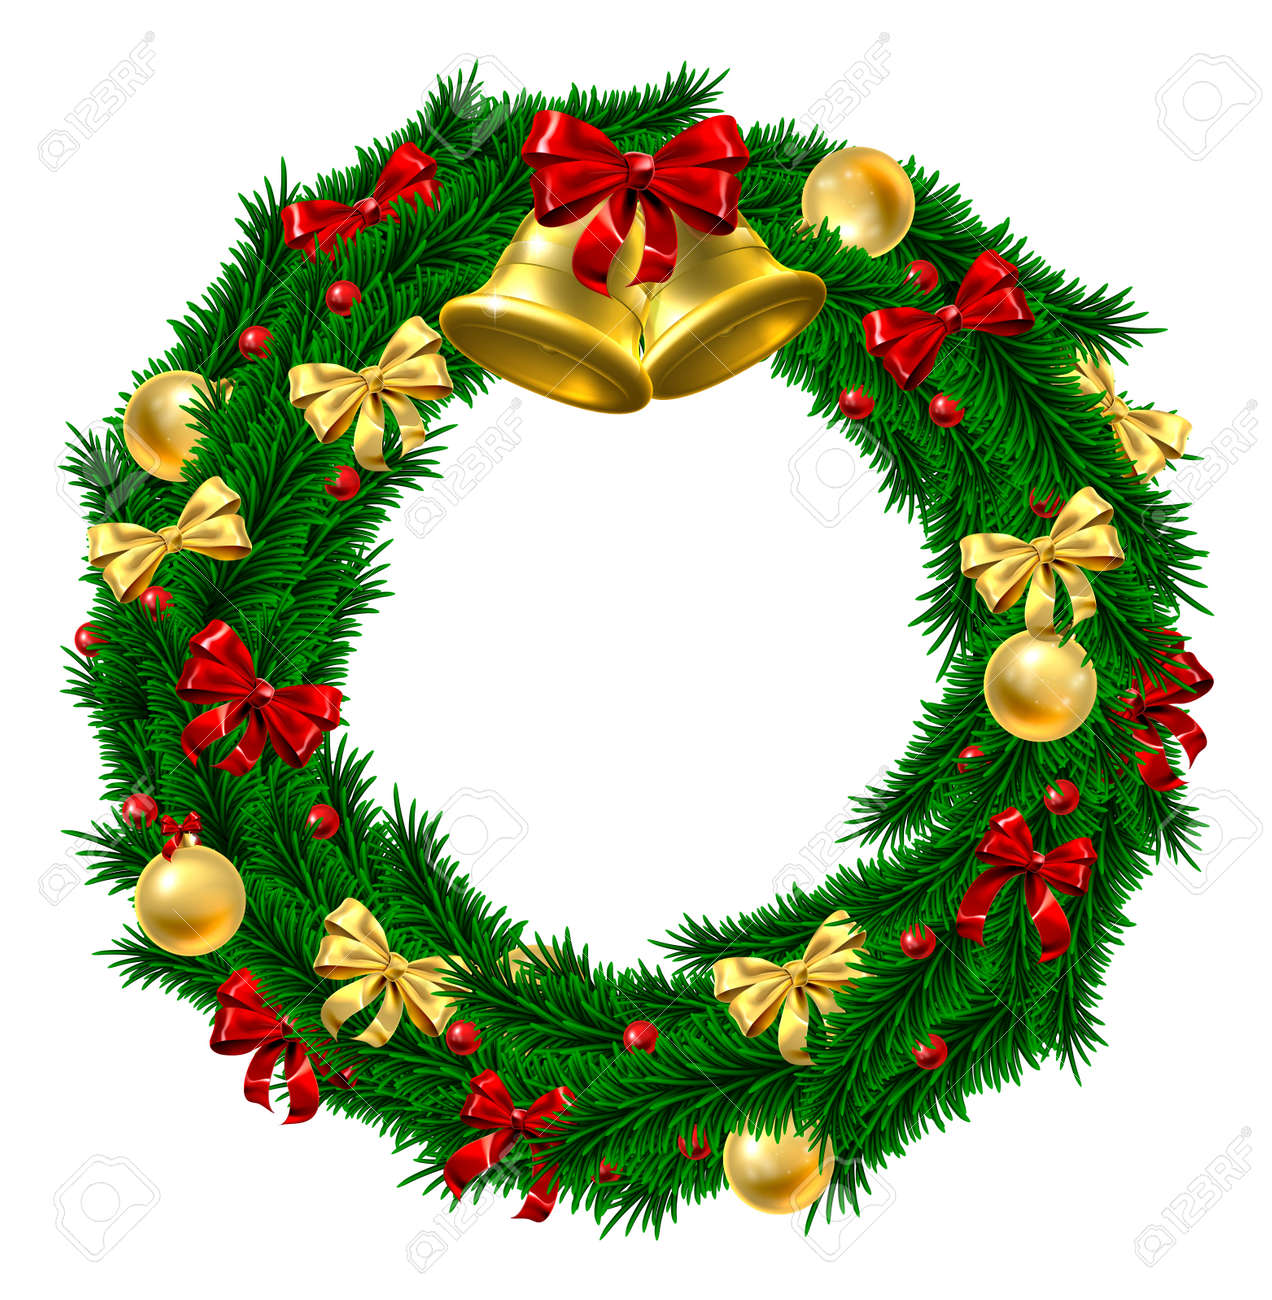 A Christmas Door Wreath Decoration With Gold And Red Bows And Ribbons,  Holly Berries,